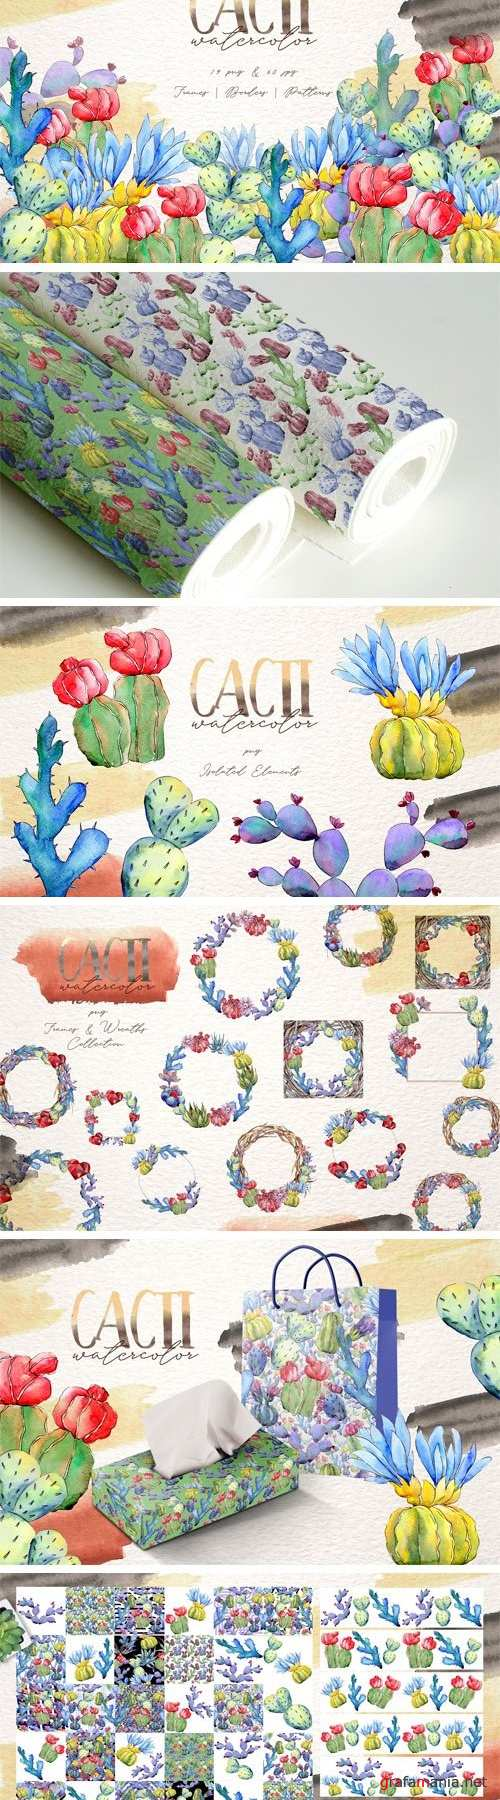 Cool colorful cacti PNG watercolor - 3087941